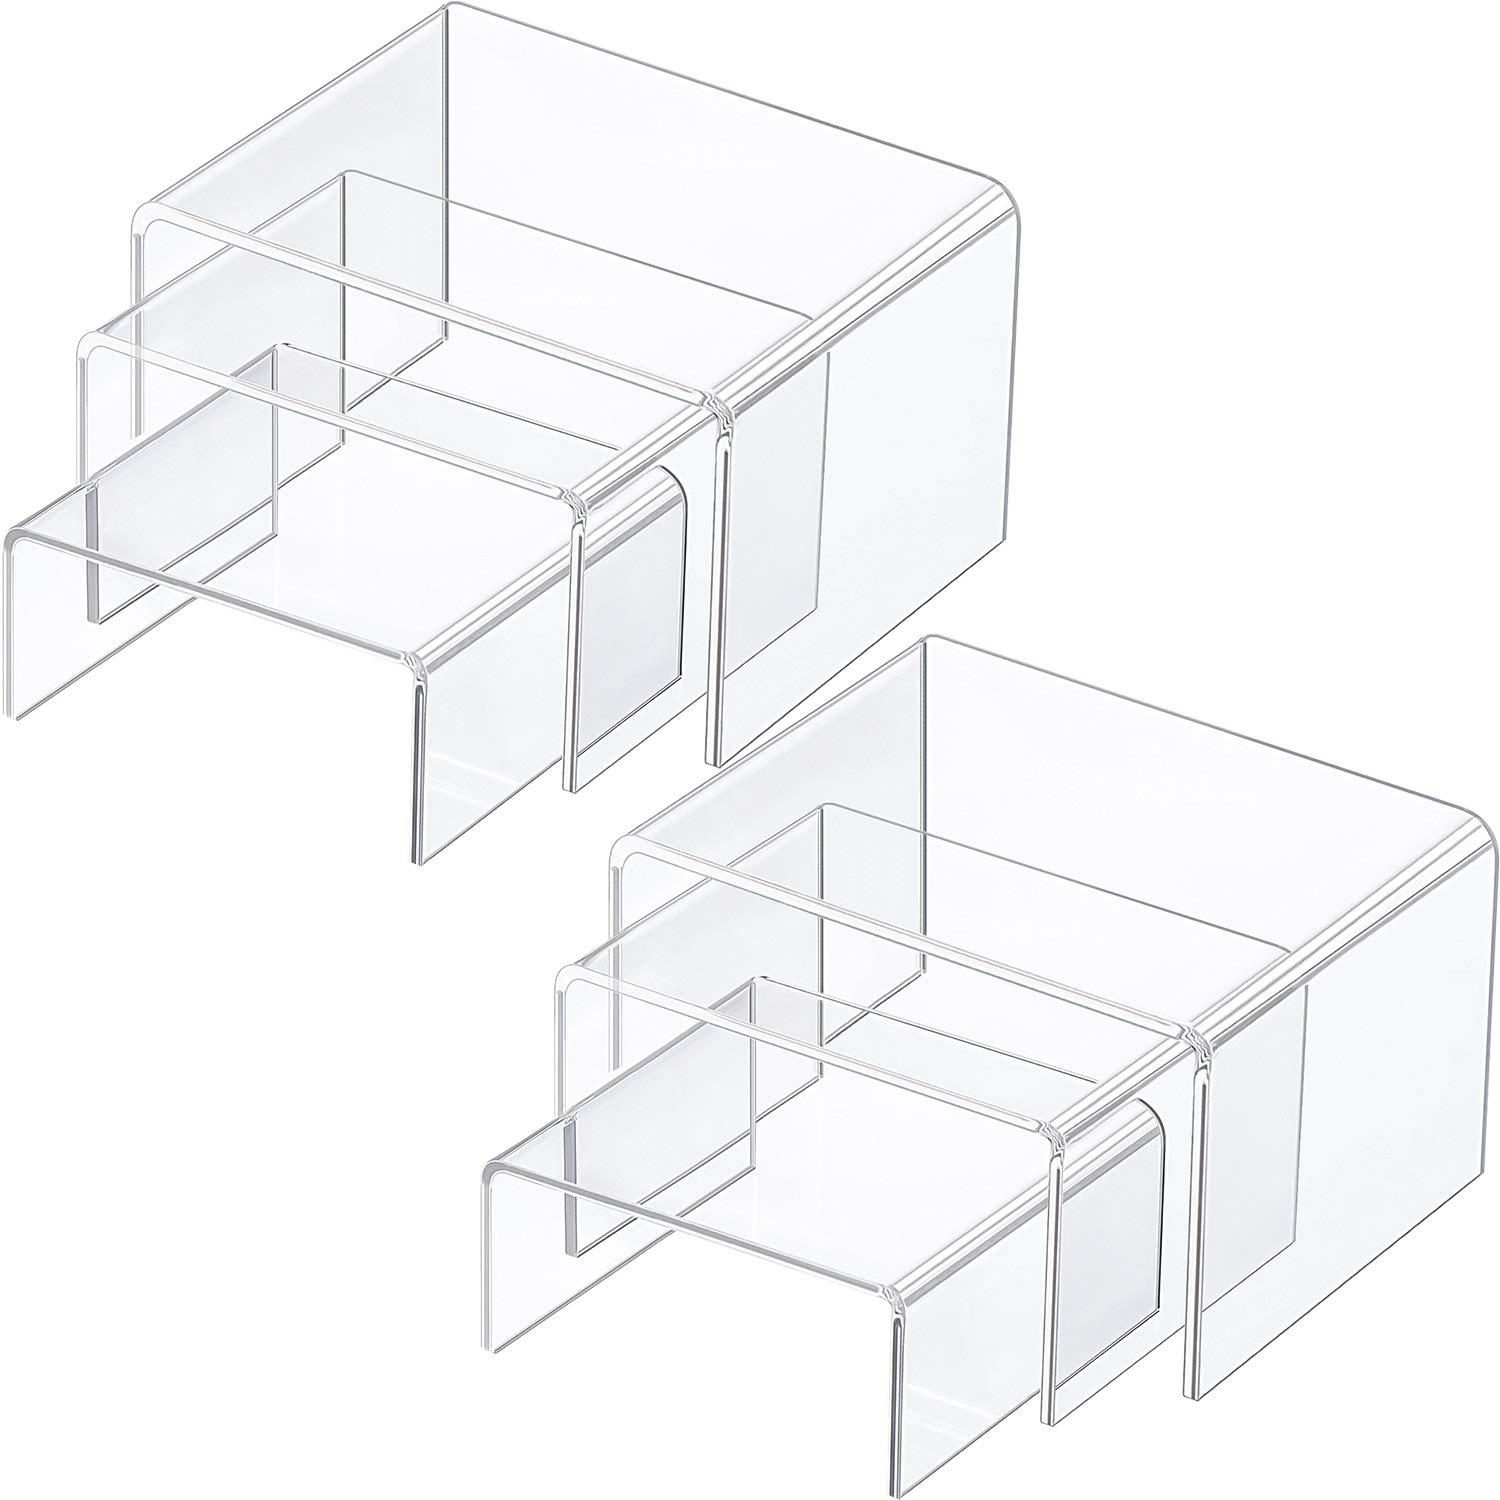 Chuangdi 2 Sets Clear Acrylic Display Risers, Jewelry Display Riser Shelf Showcase Fixtures